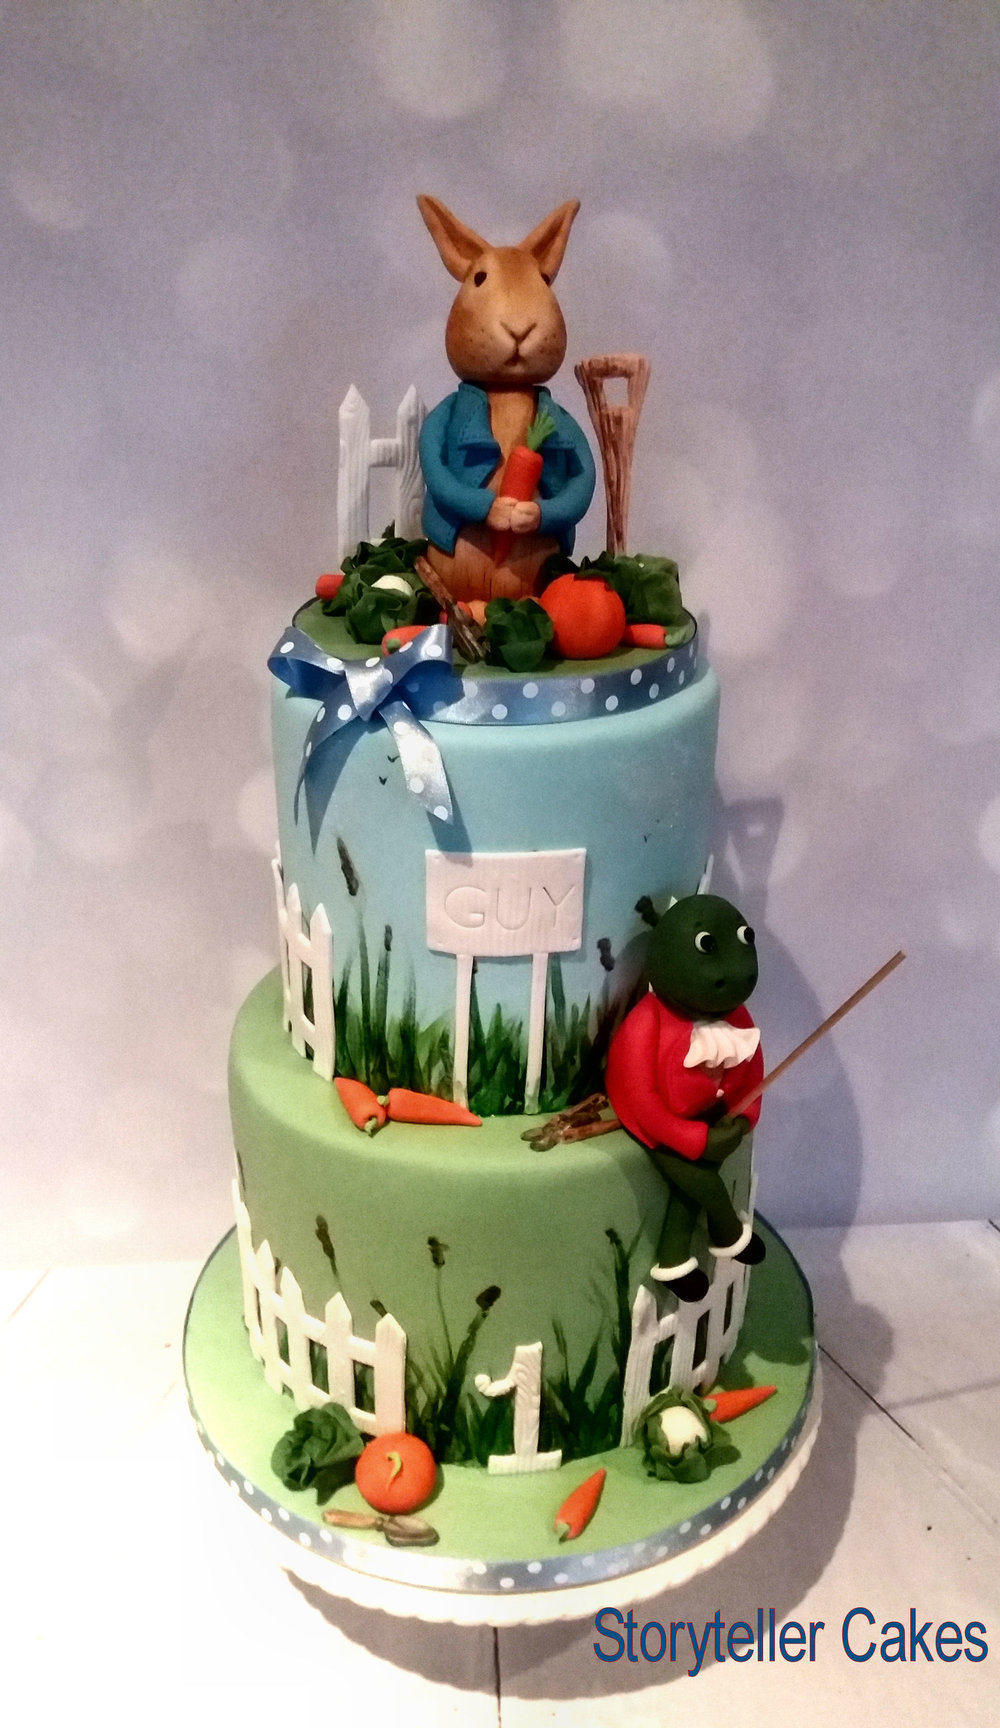 peter rabbit cake 1.jpg